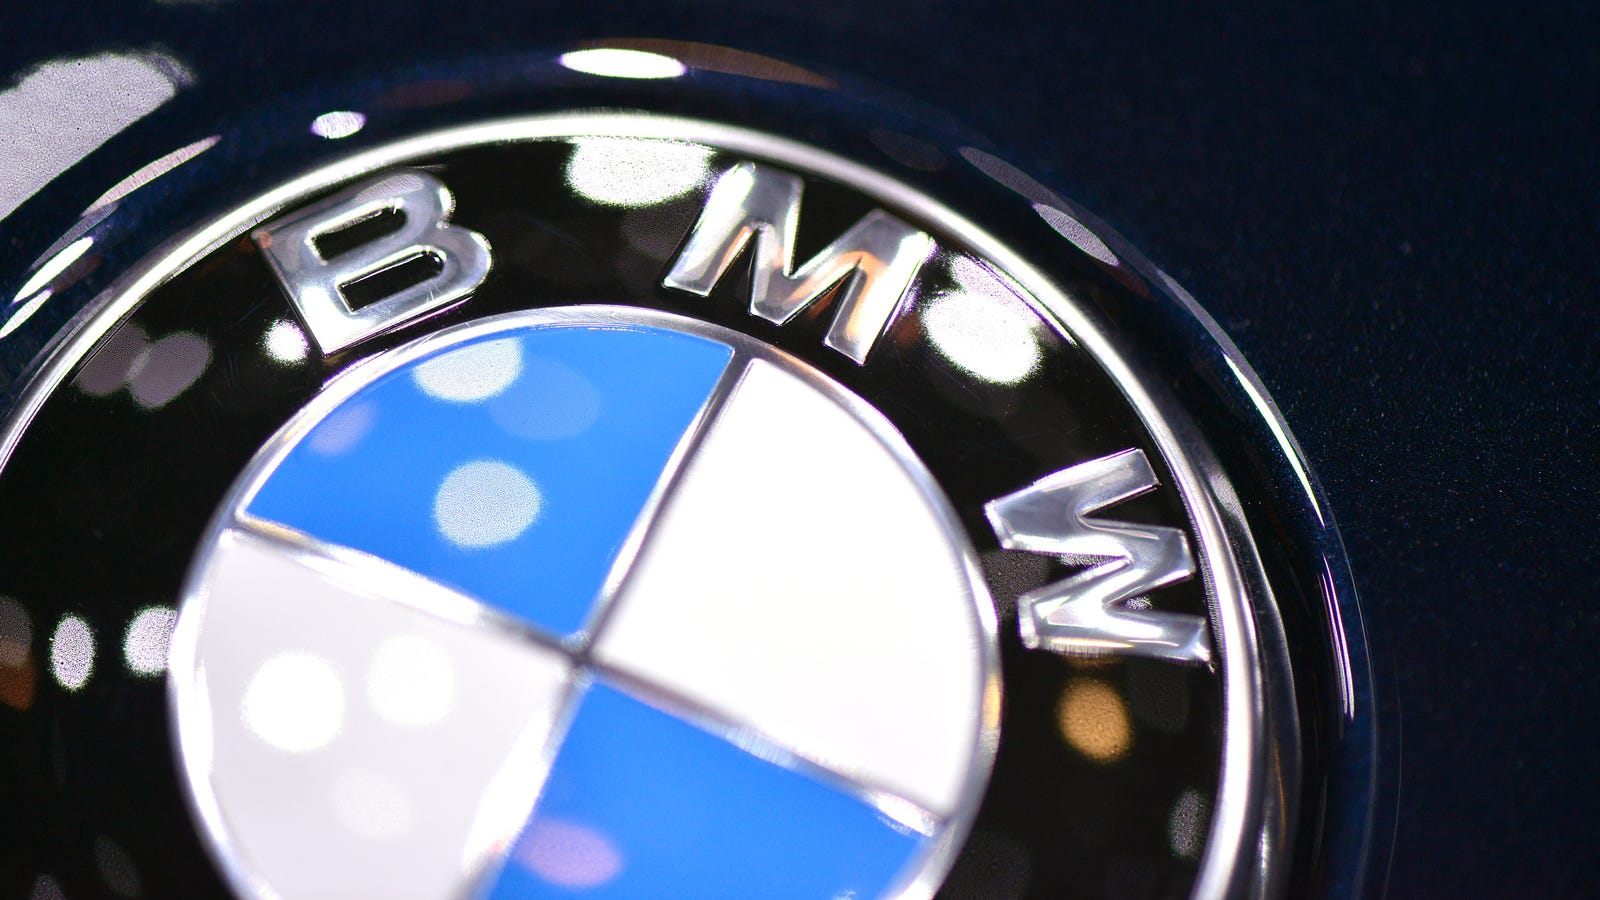 City Seizes and Crushes Dude's BMW While He Was Getting Surgery